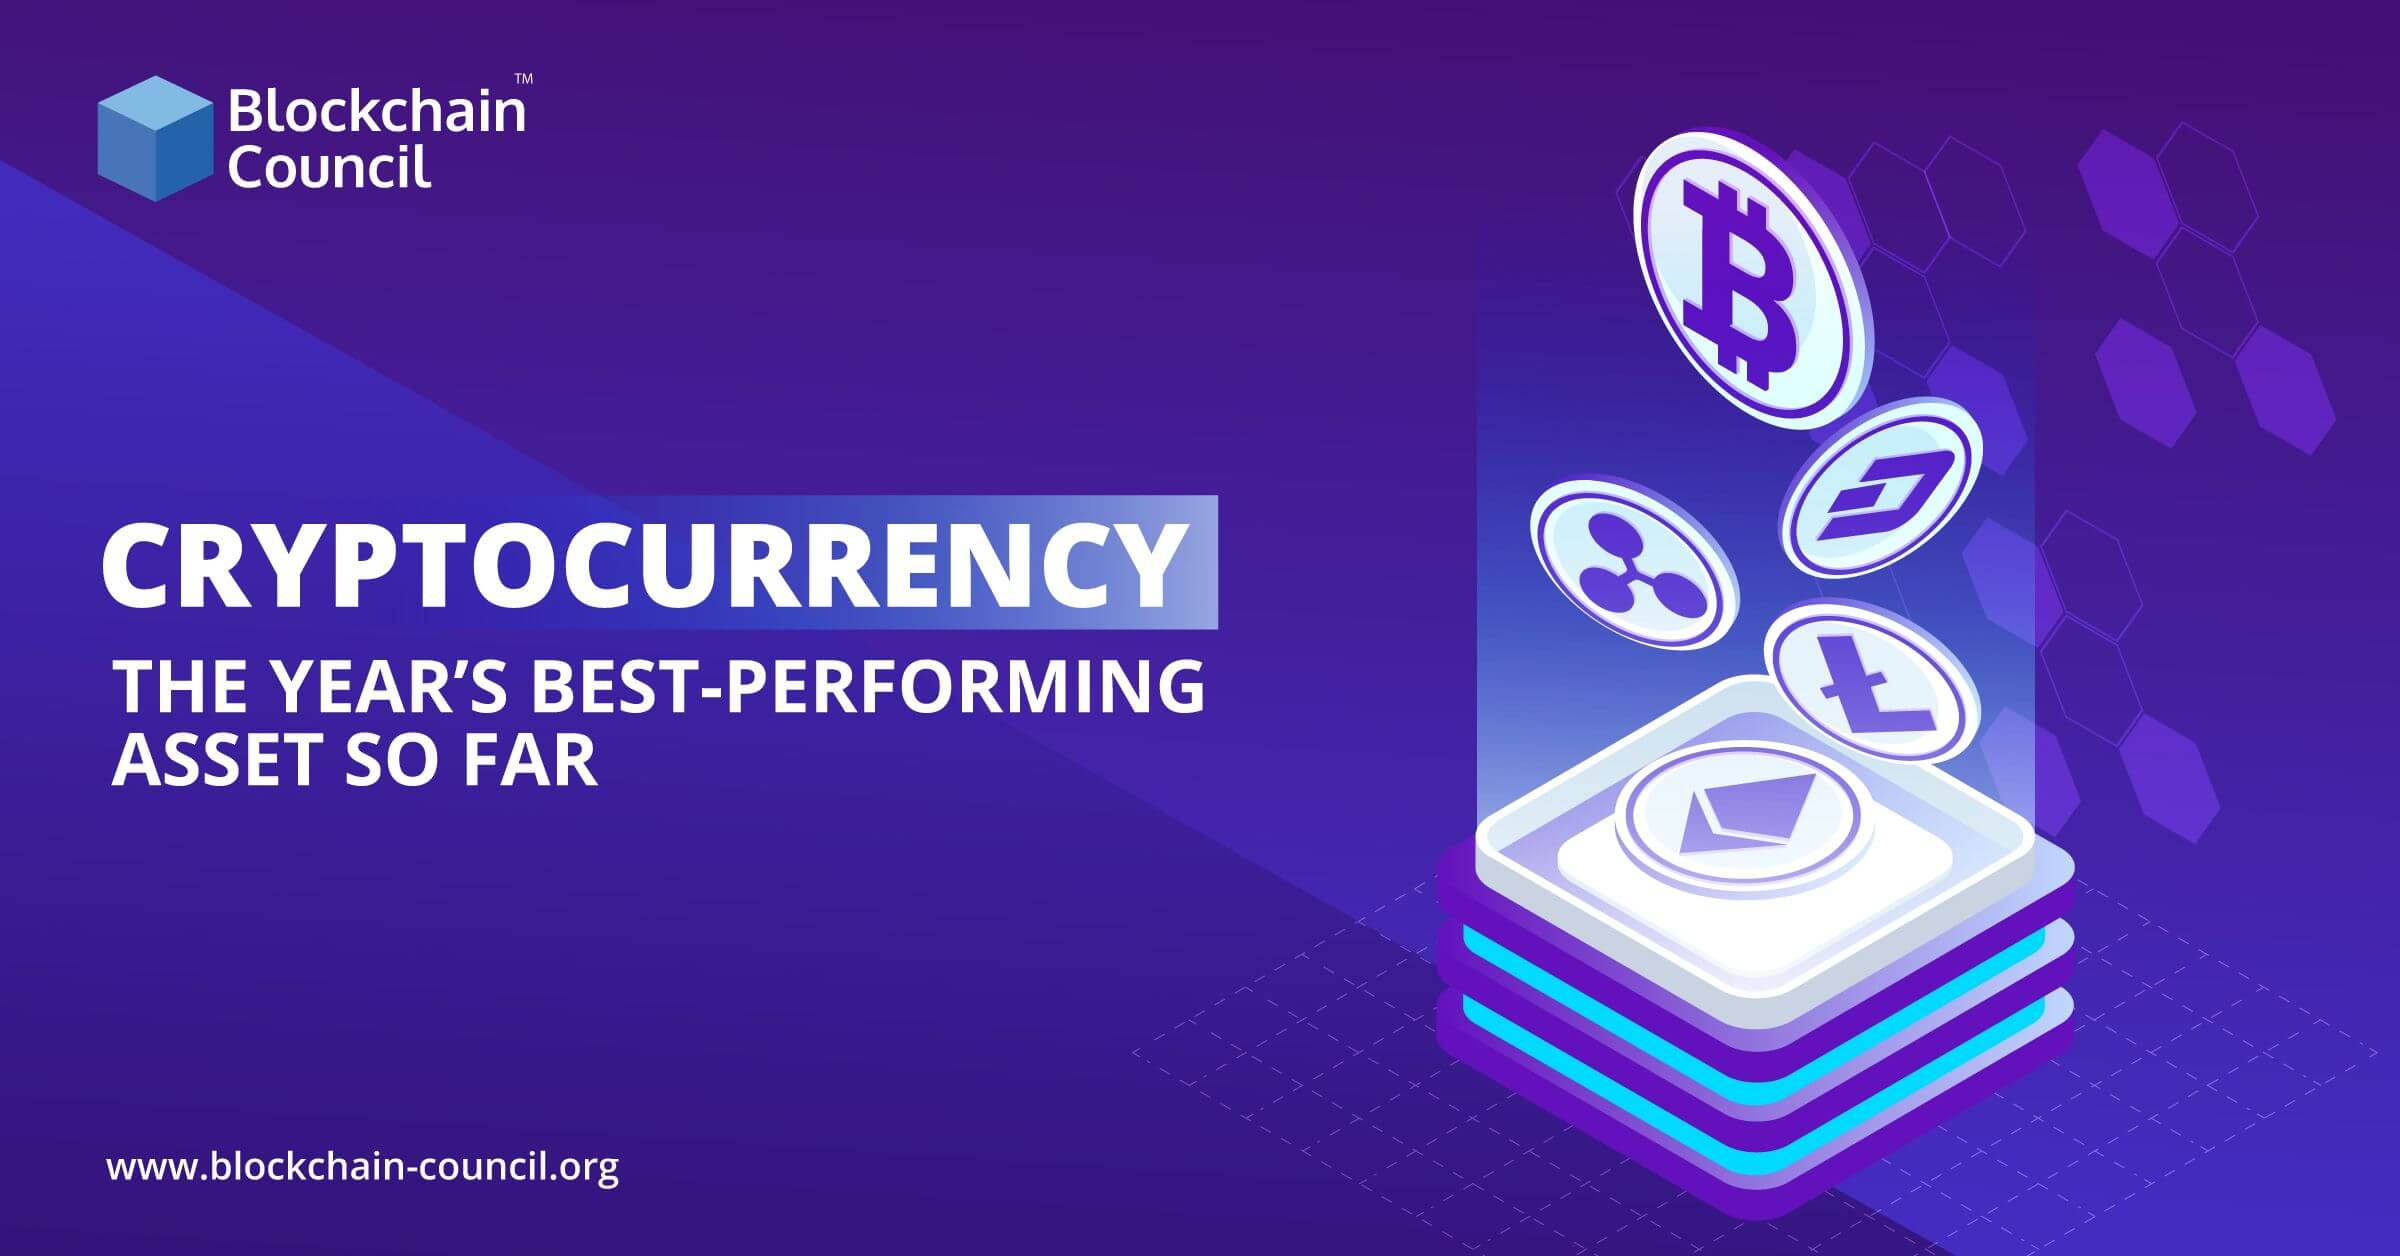 CRYPTOCURRENCY-The-Year's-Best-Performing-Asset-So-Far